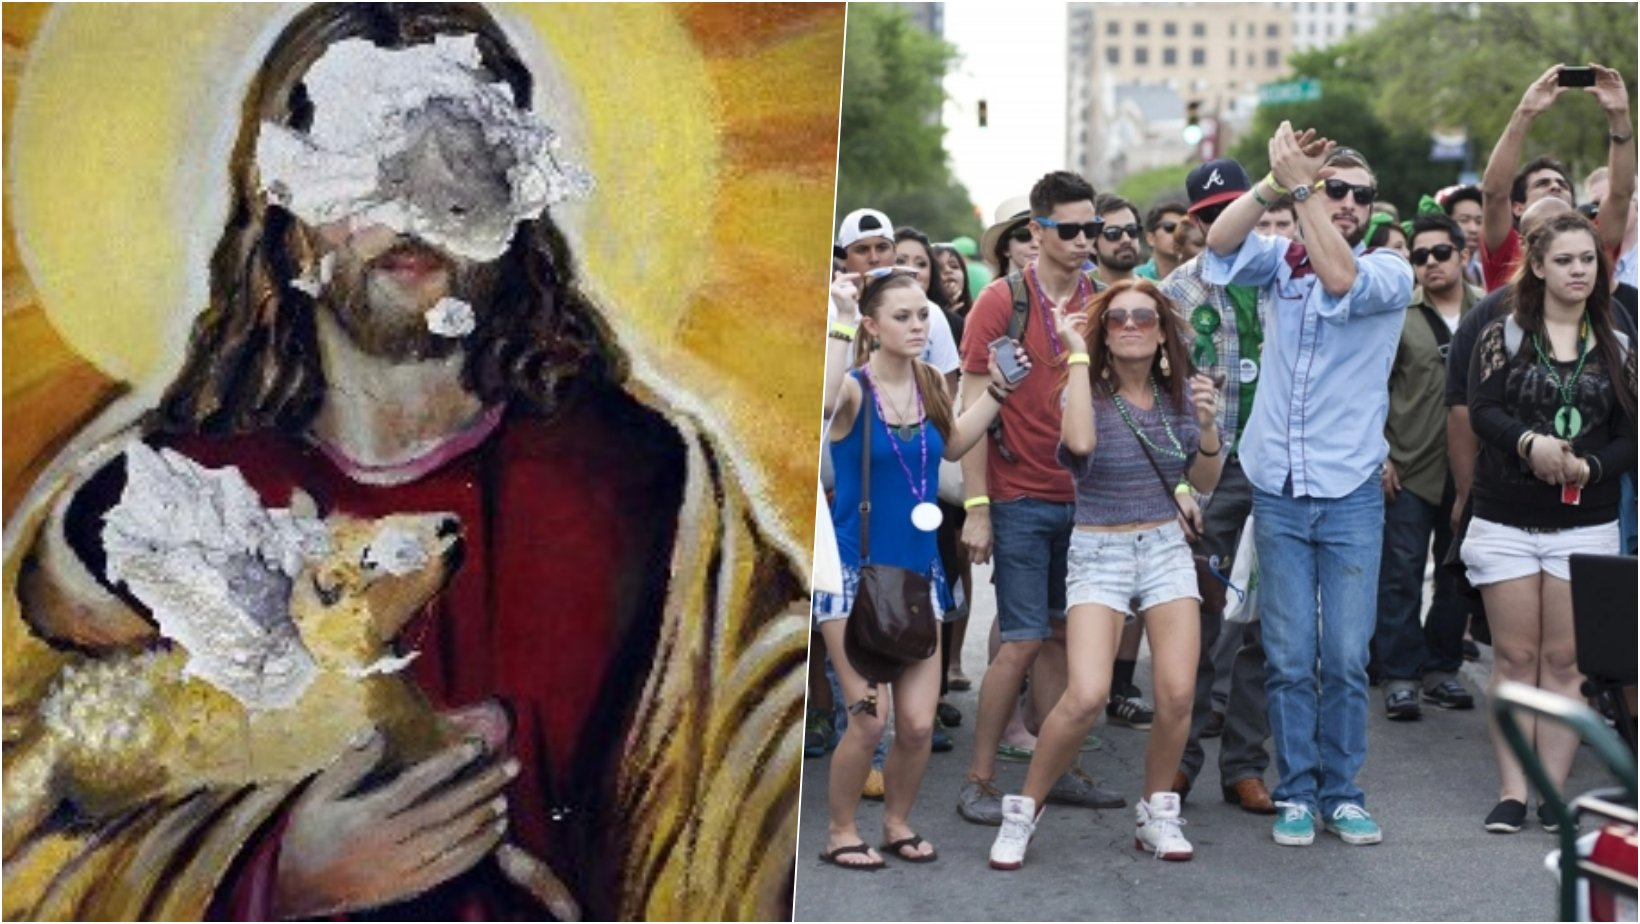 6 facebook cover 35.png?resize=1200,630 - Half Of The Millennials Do Not Care And Do Not Believe That God Exists, Poll Finds